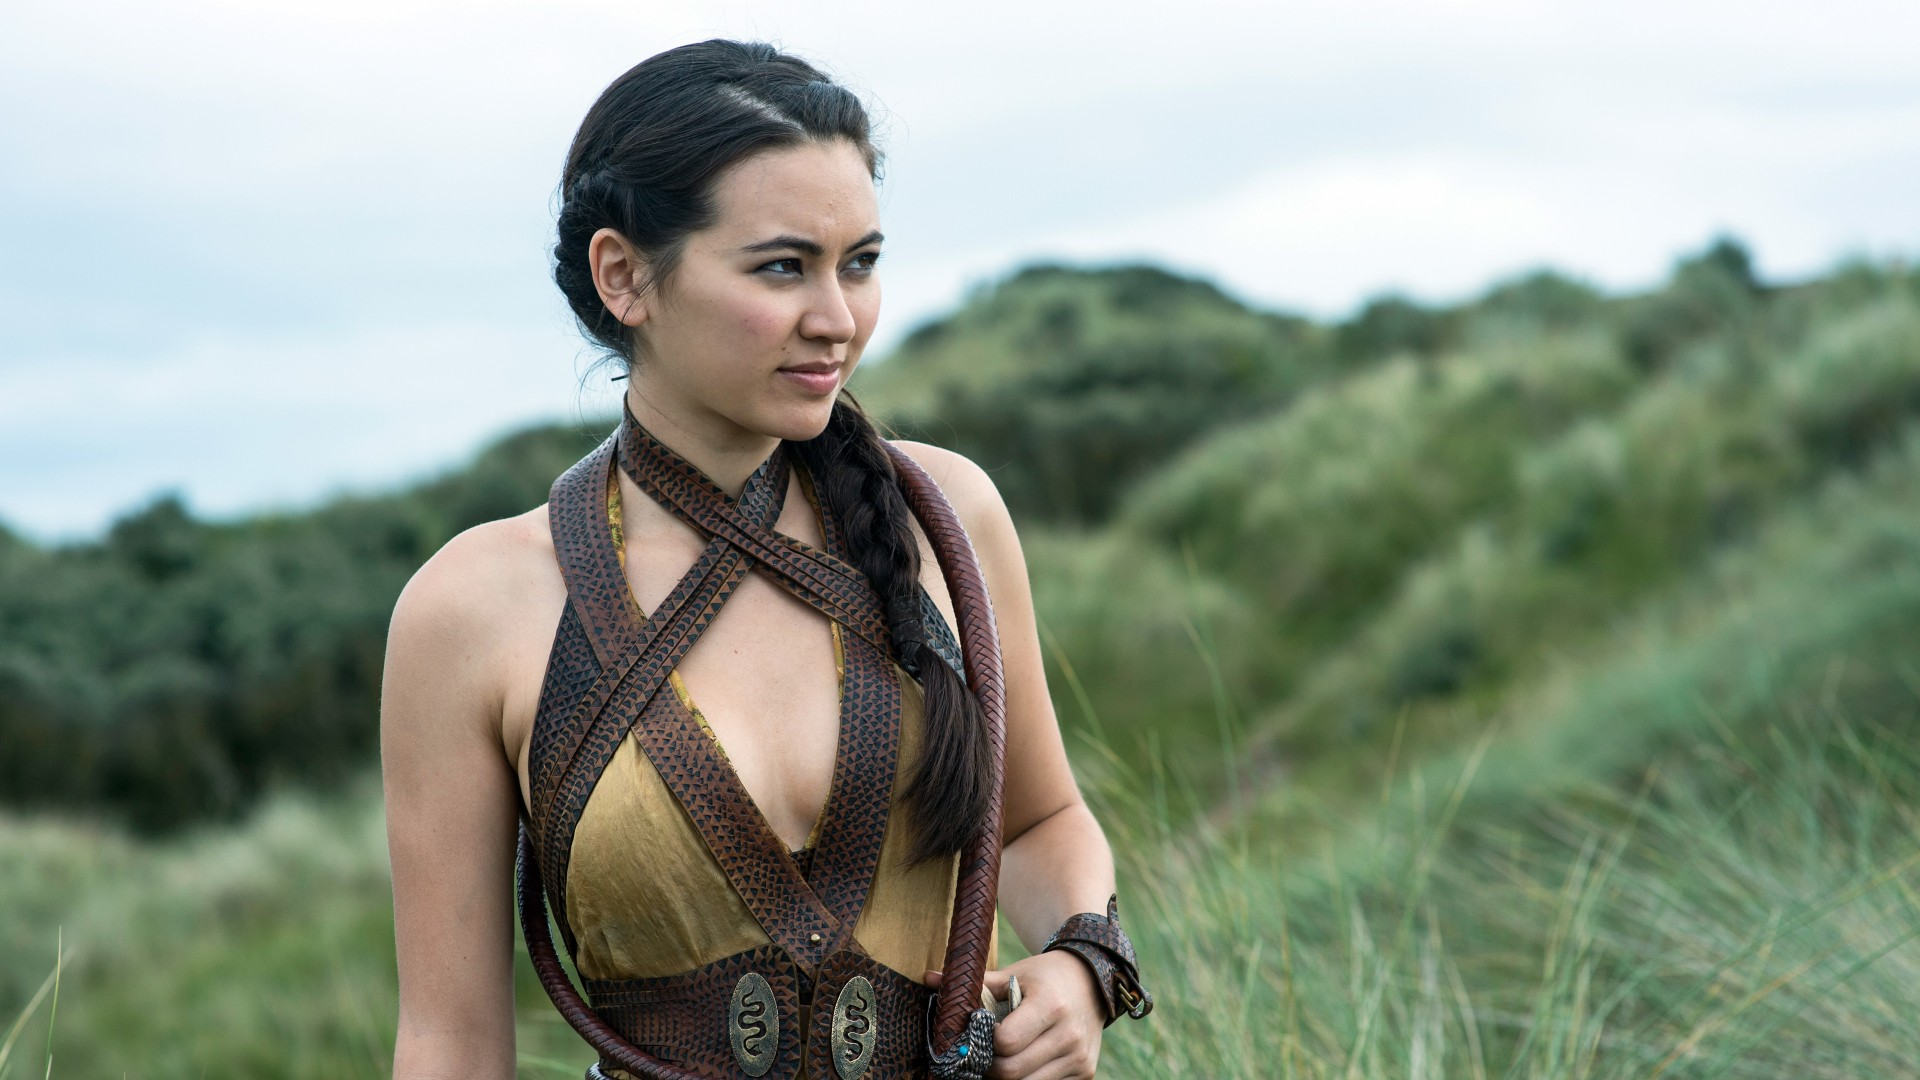 Shattered Iphone X Wallpaper Jessica Henwick Nymeria Sand Game Of Thrones Wallpapers